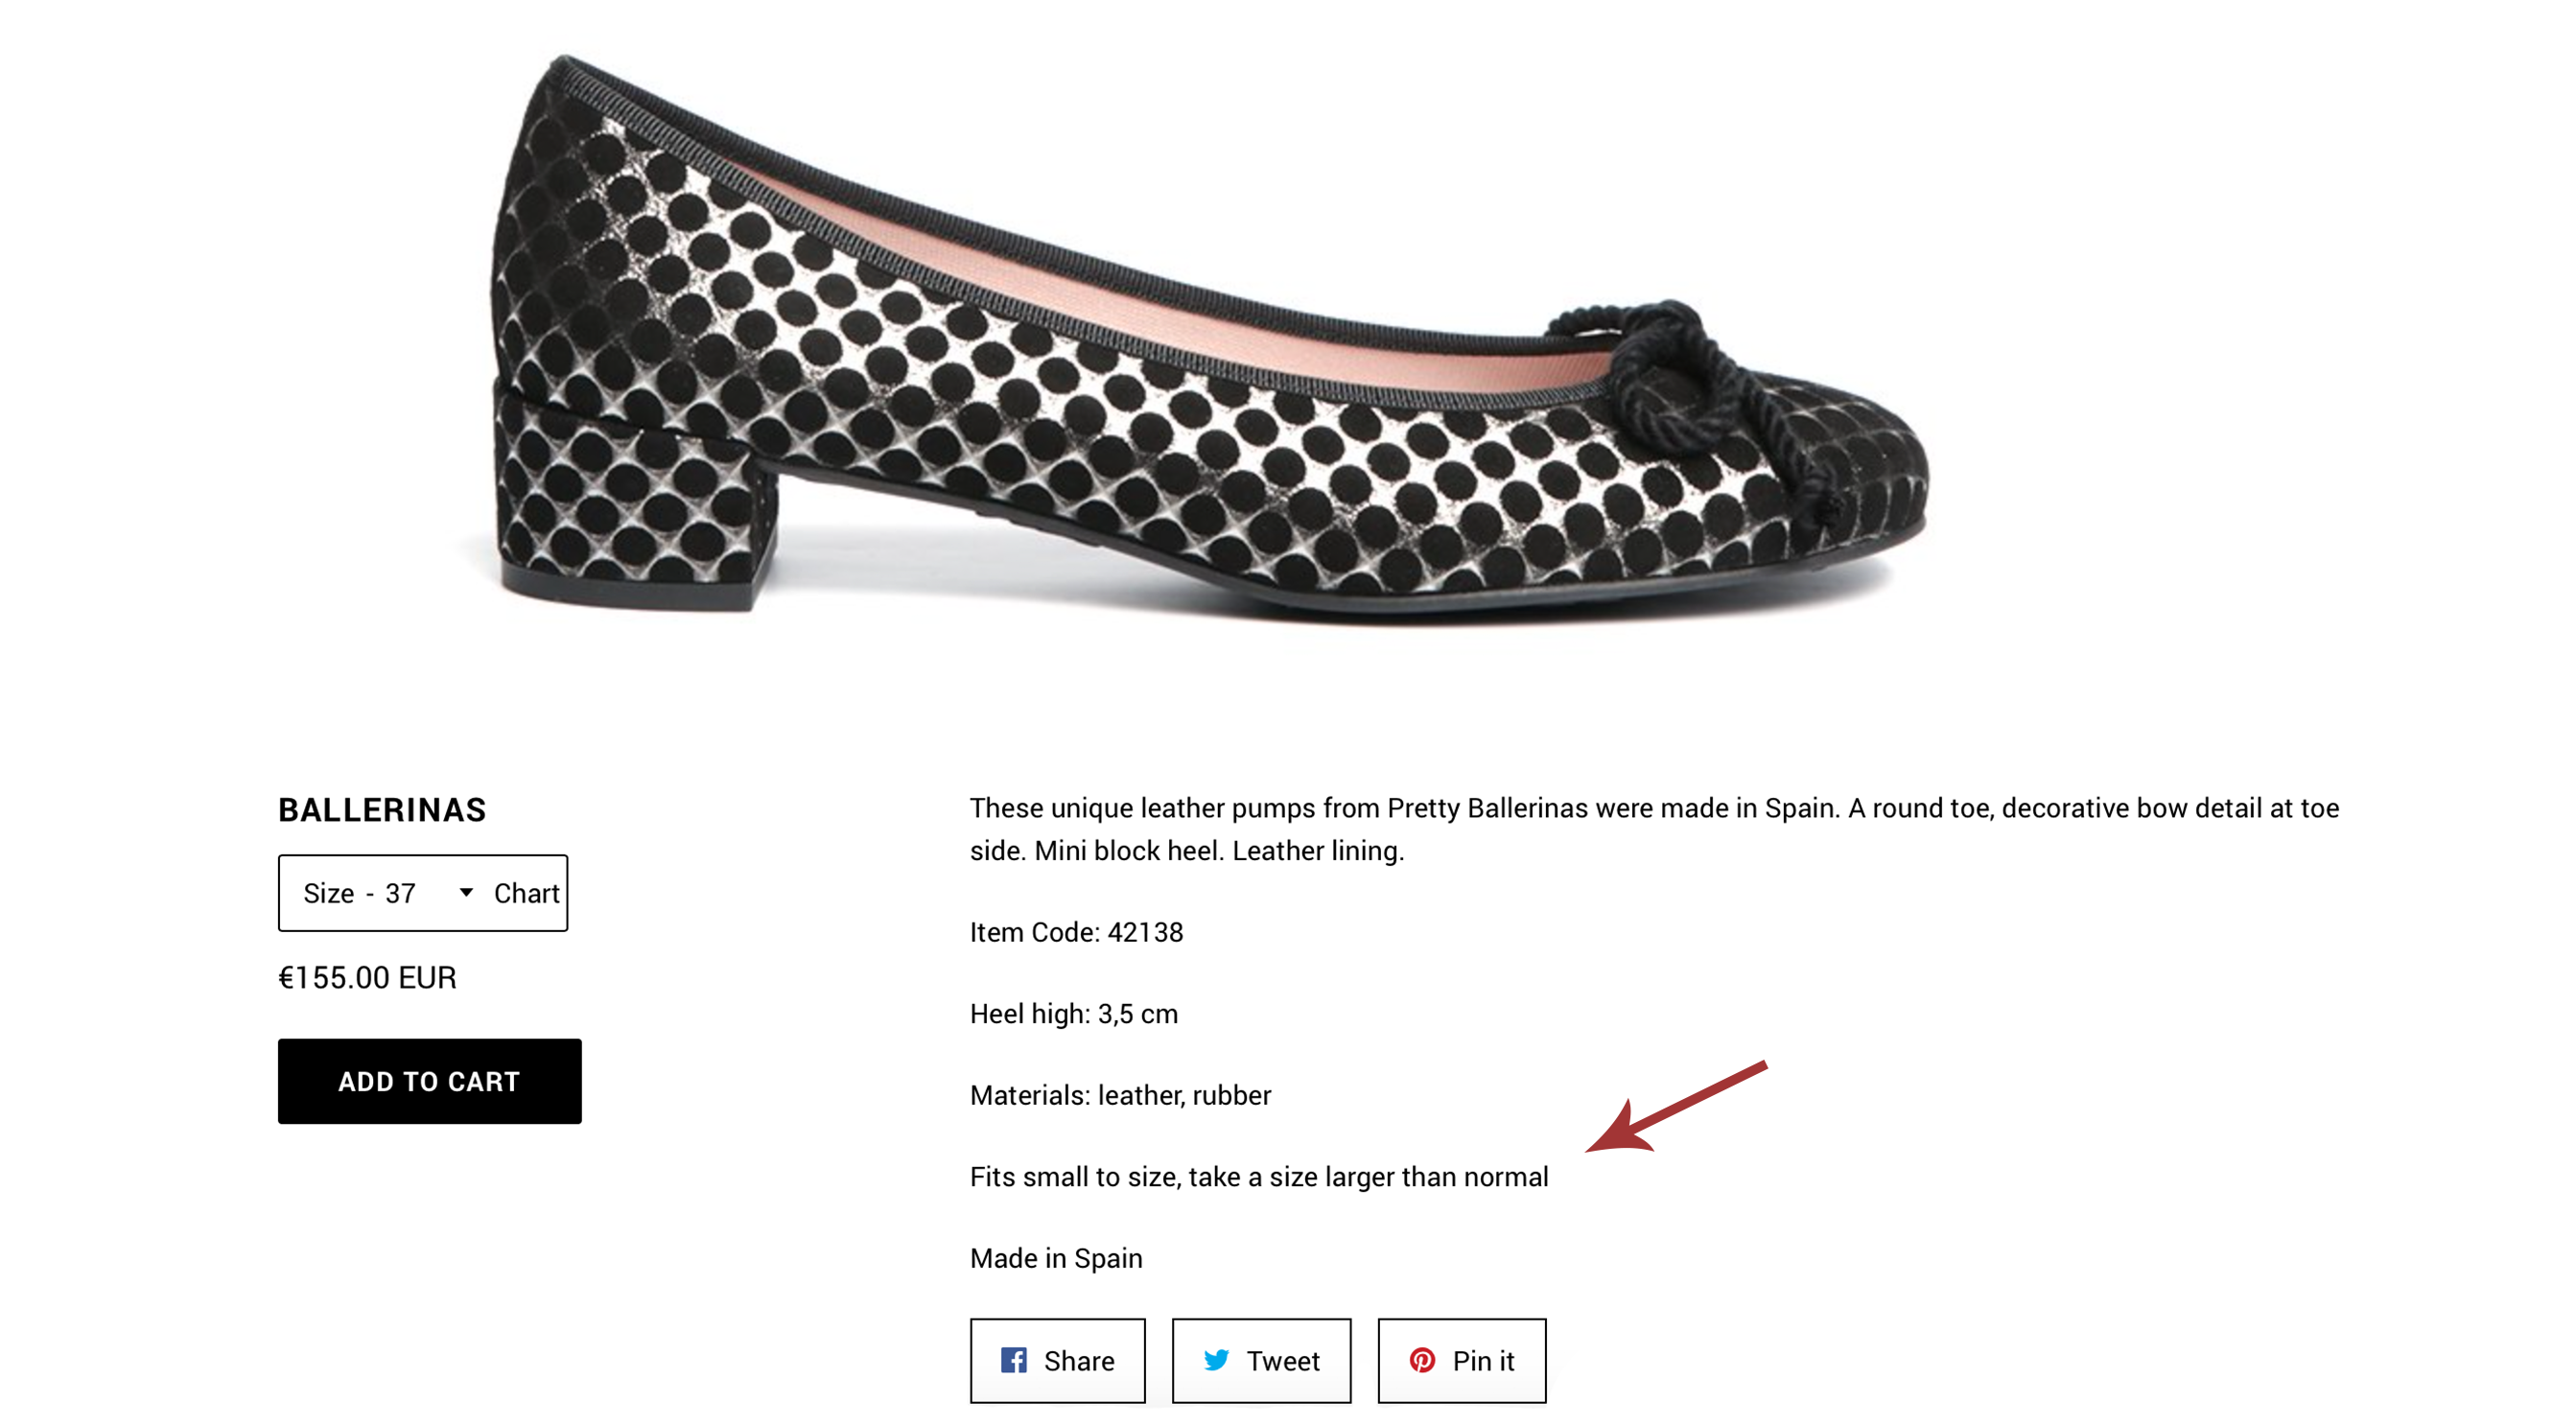 d679ce770d HOW TO CHOOSE THE CORRECT SHOE SIZE WHEN SHOPPING ONLINE? – DOLITA